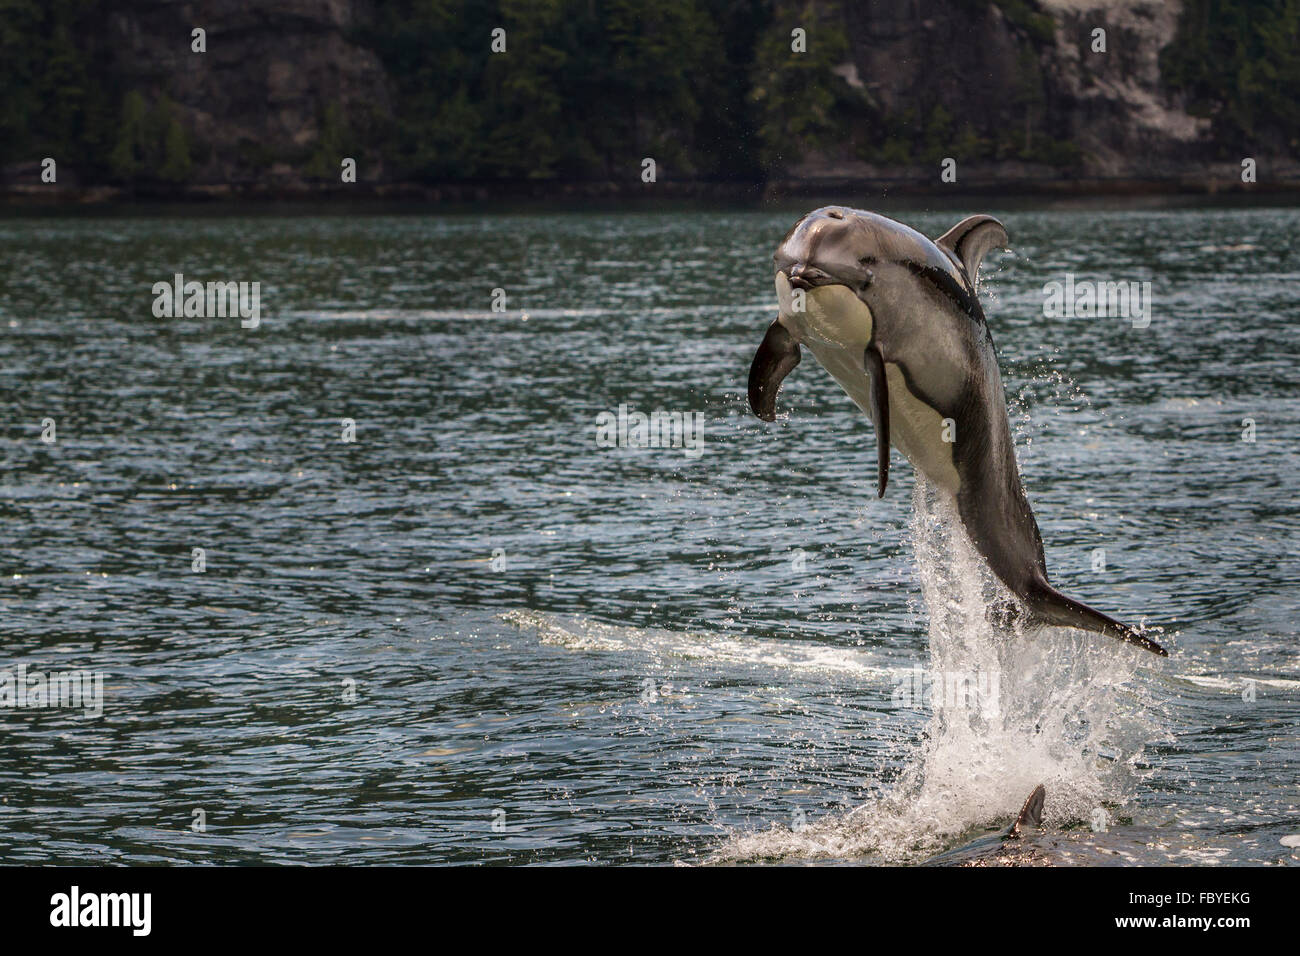 Pacific White Sided Dolphin (Lagenorhynchus obliquidens) jumping - Stock Image